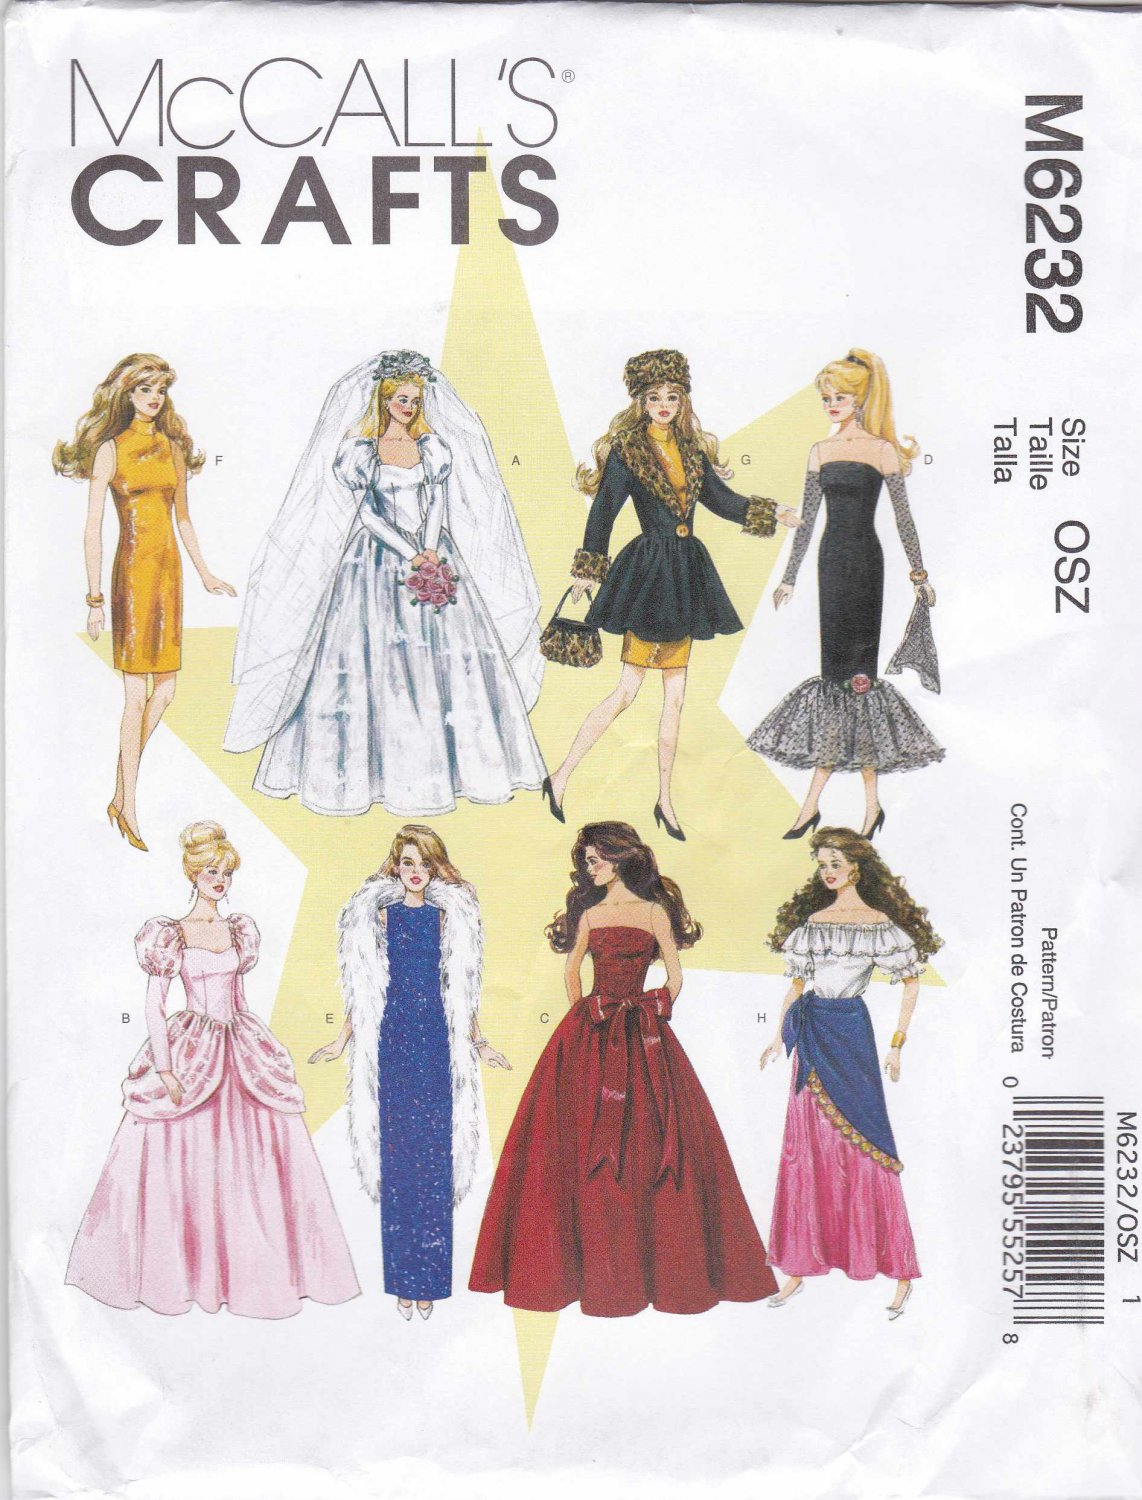 """McCall's Sewing Pattern 6232 Crafts 11 1/2"""" Fashion Doll Barbie Wardrobe Dresses Evening Gowns"""